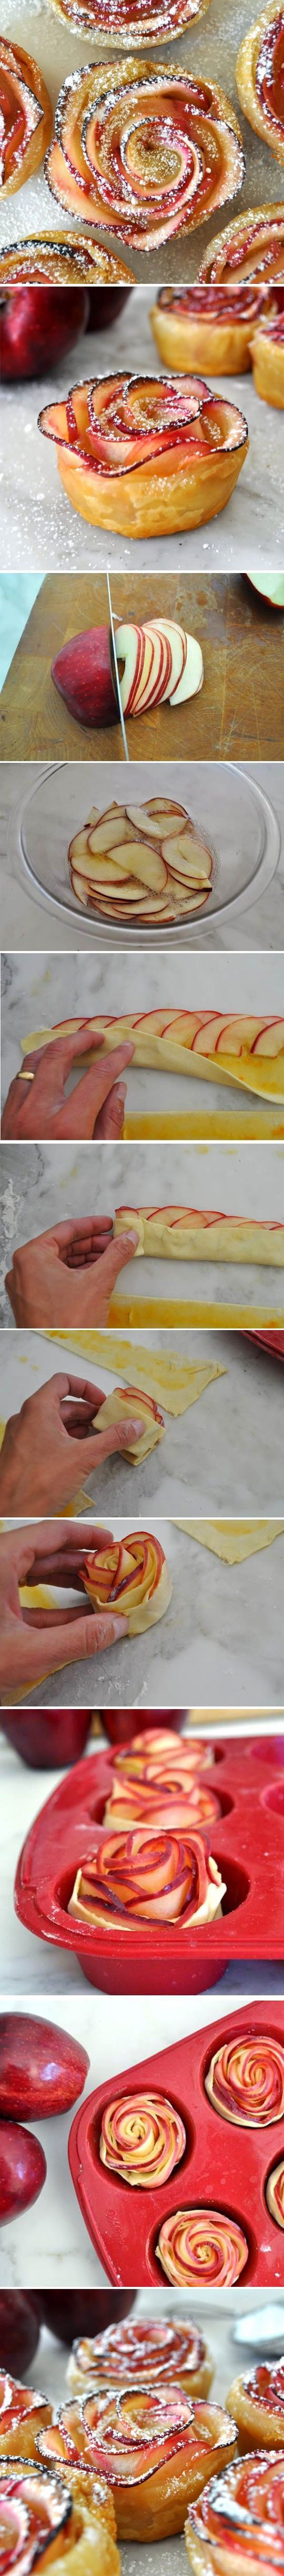 How to Make Apple Roses Beautiful and Delicious By Manuela | FoodJino